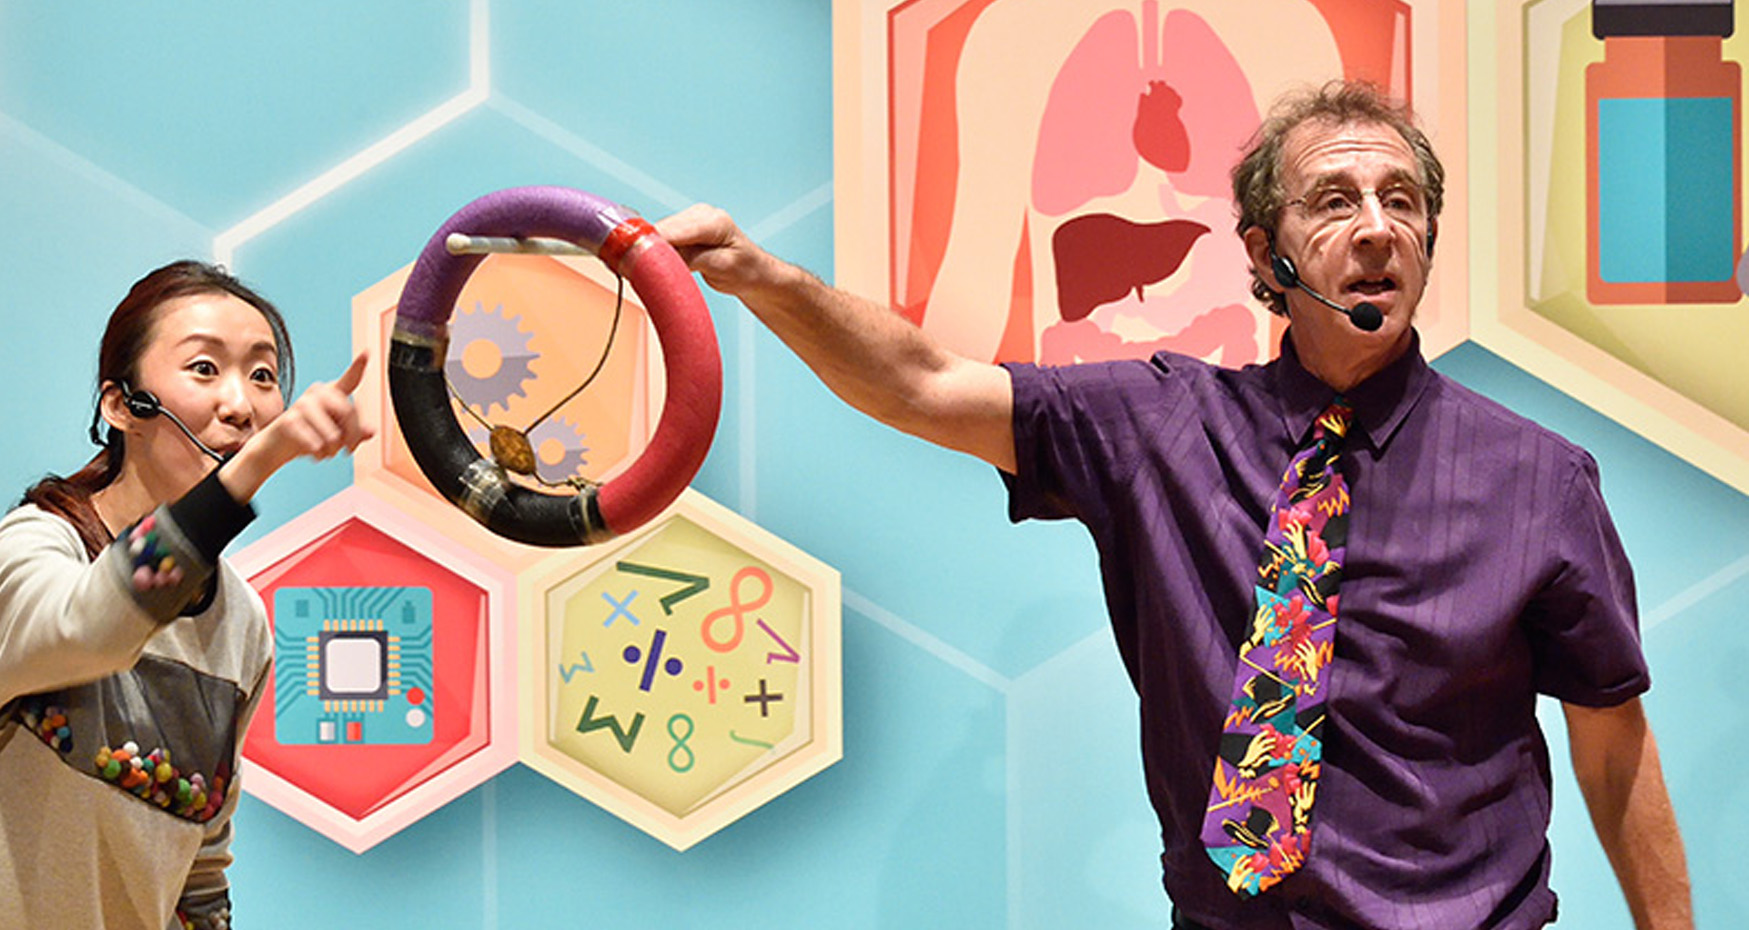 The Magical Math and Science Show